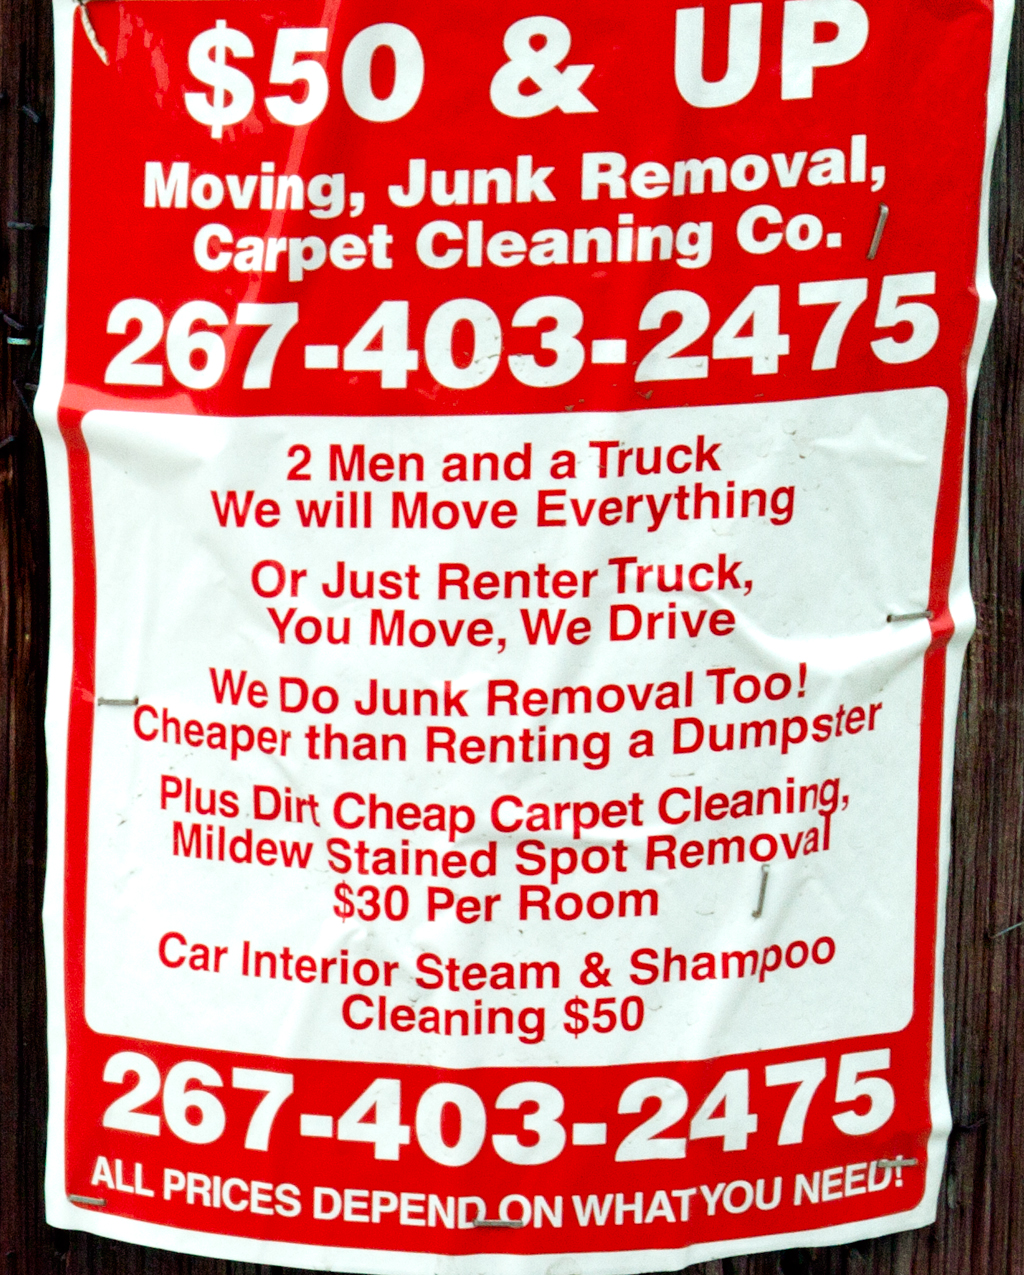 2-Men-and-a-Truck-We-will-Move-Everything-ad-on-5-22-14--Washington-Avenue-(detail)